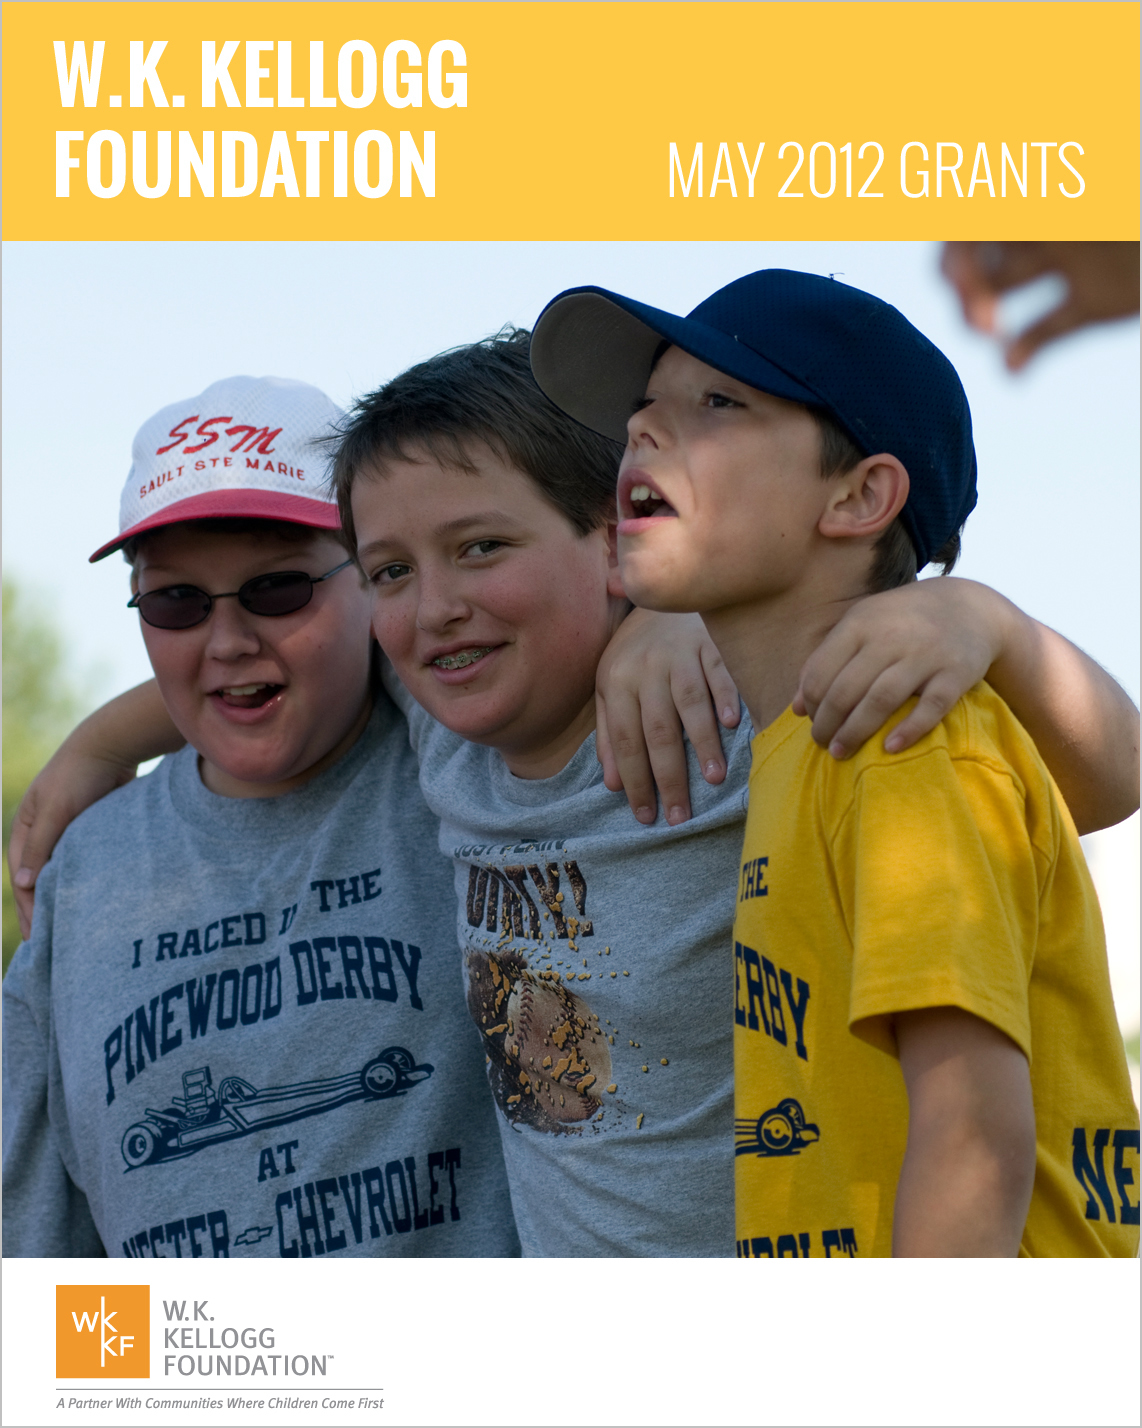 W.K. Kellogg Foundation Grants - May 2012